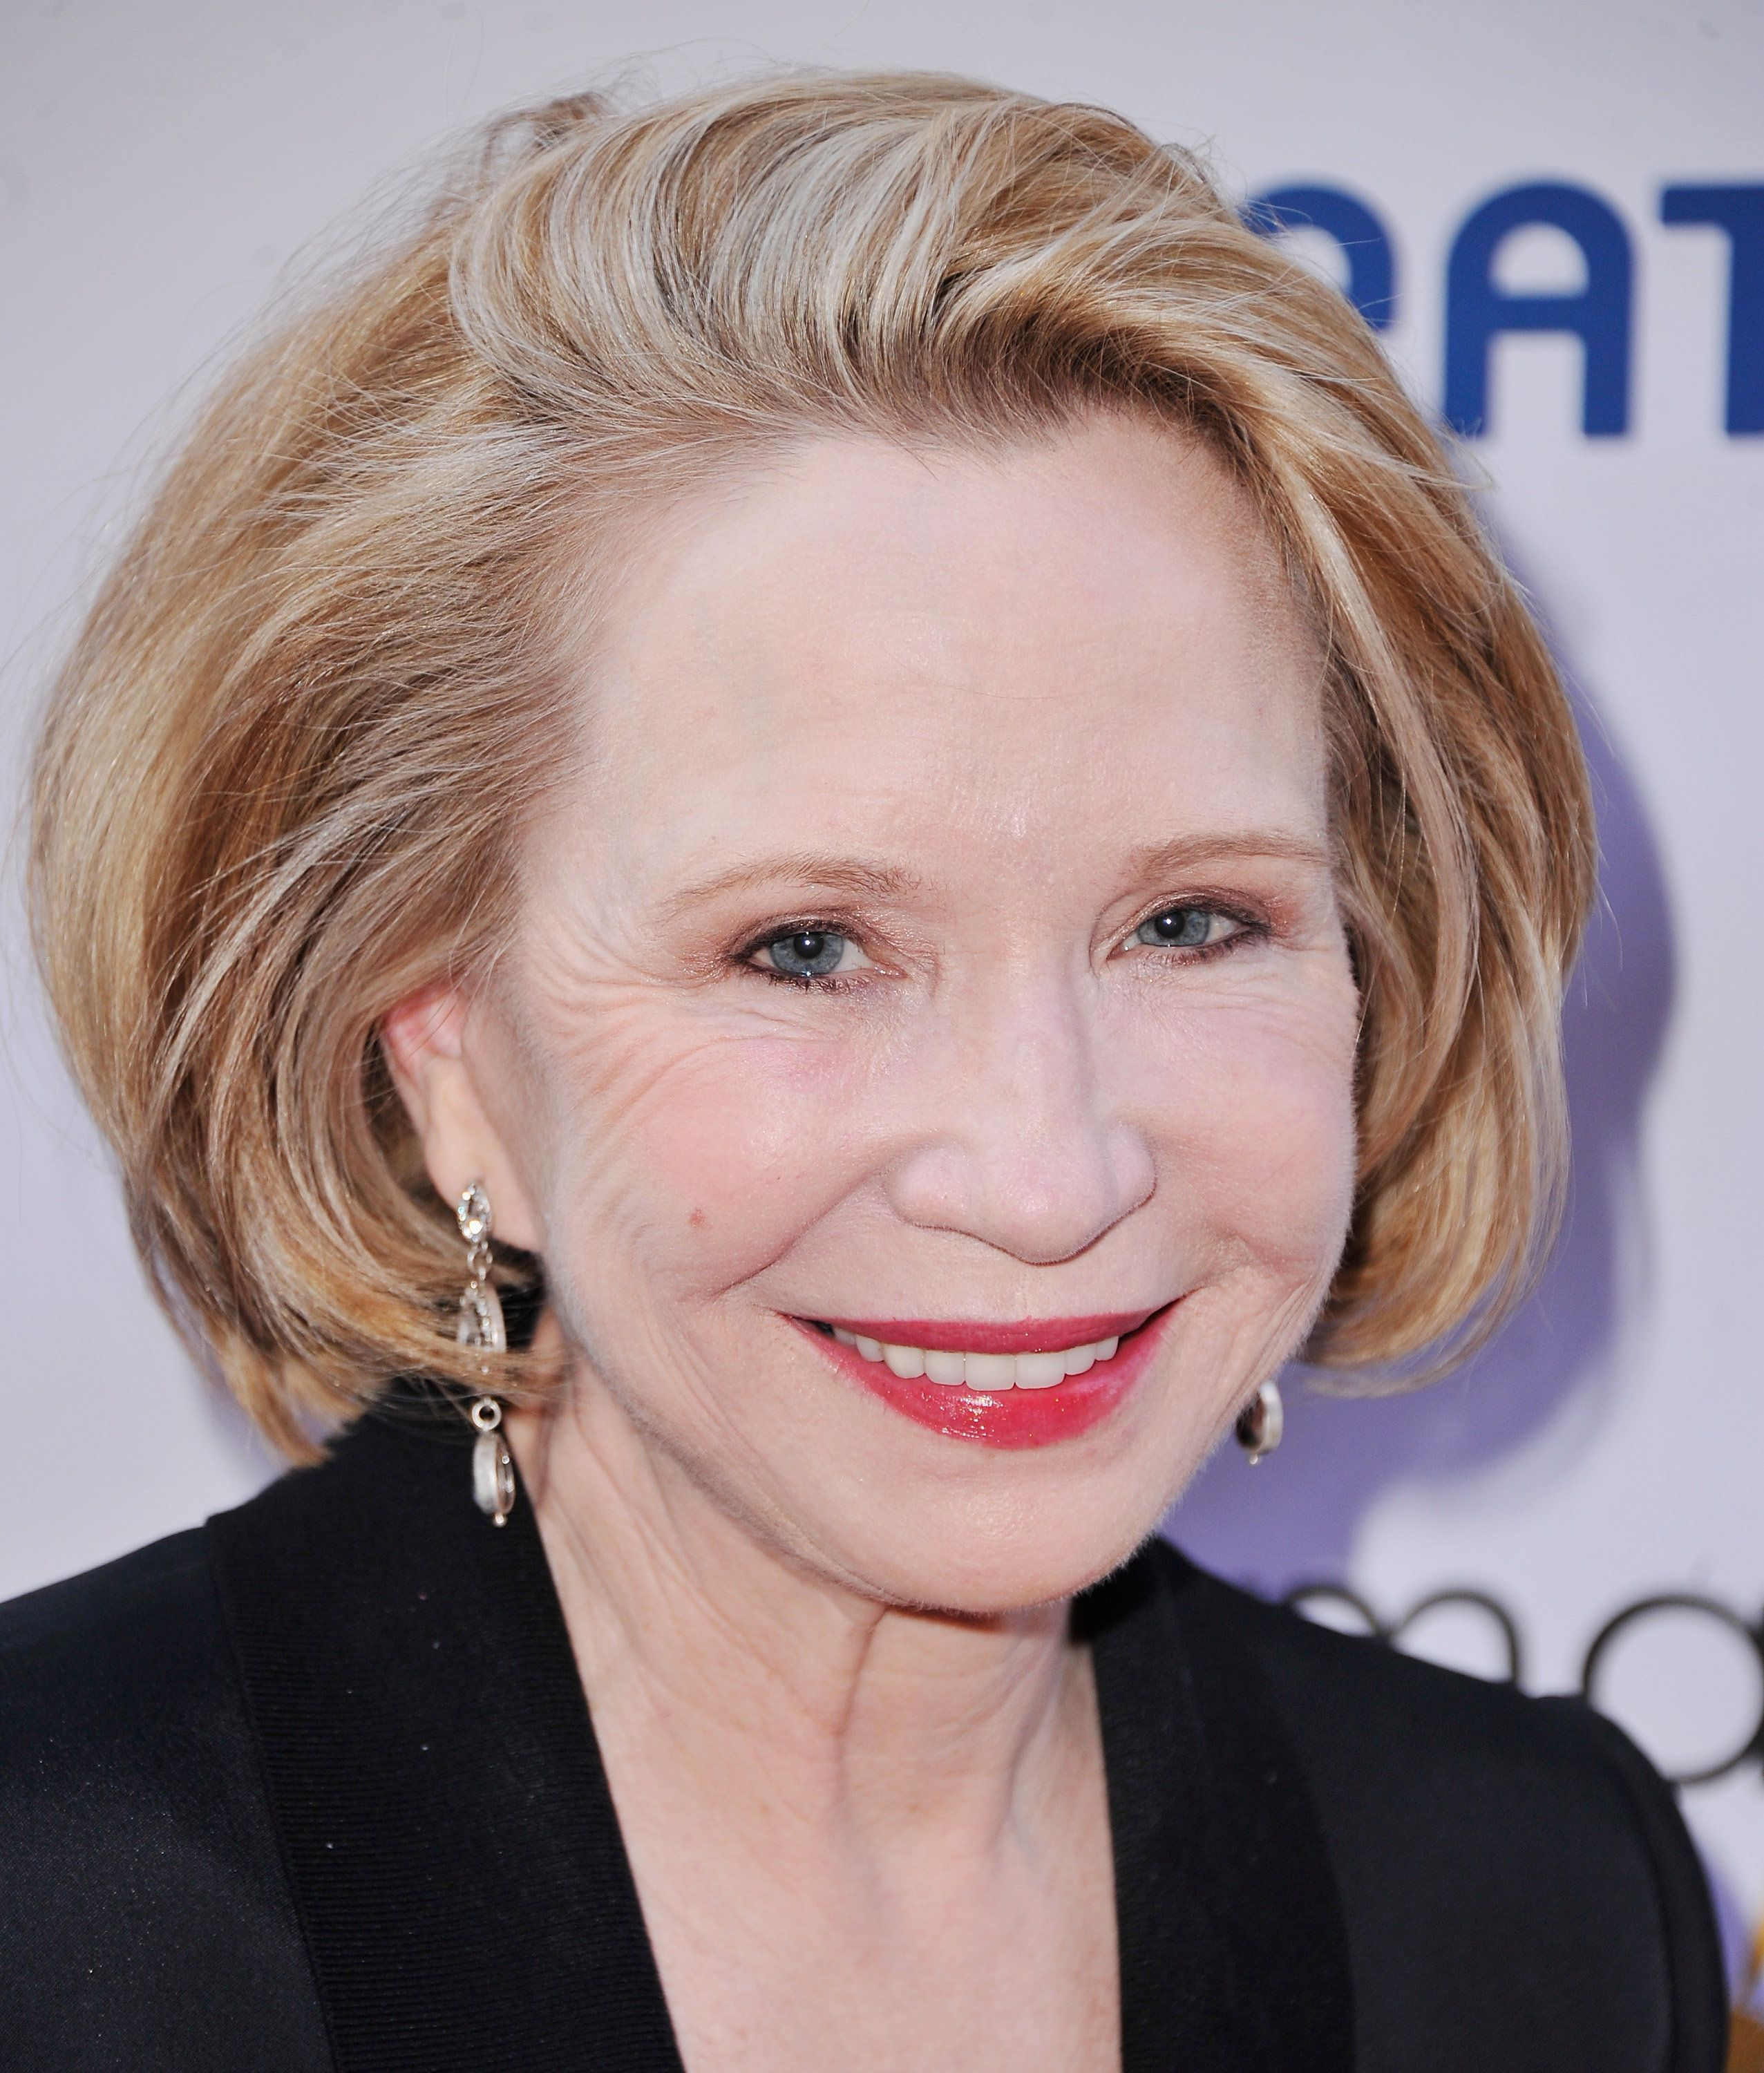 Debra Jo Rupp Boobs Best fashion news, celebrity style and fashion trends - huffpost style